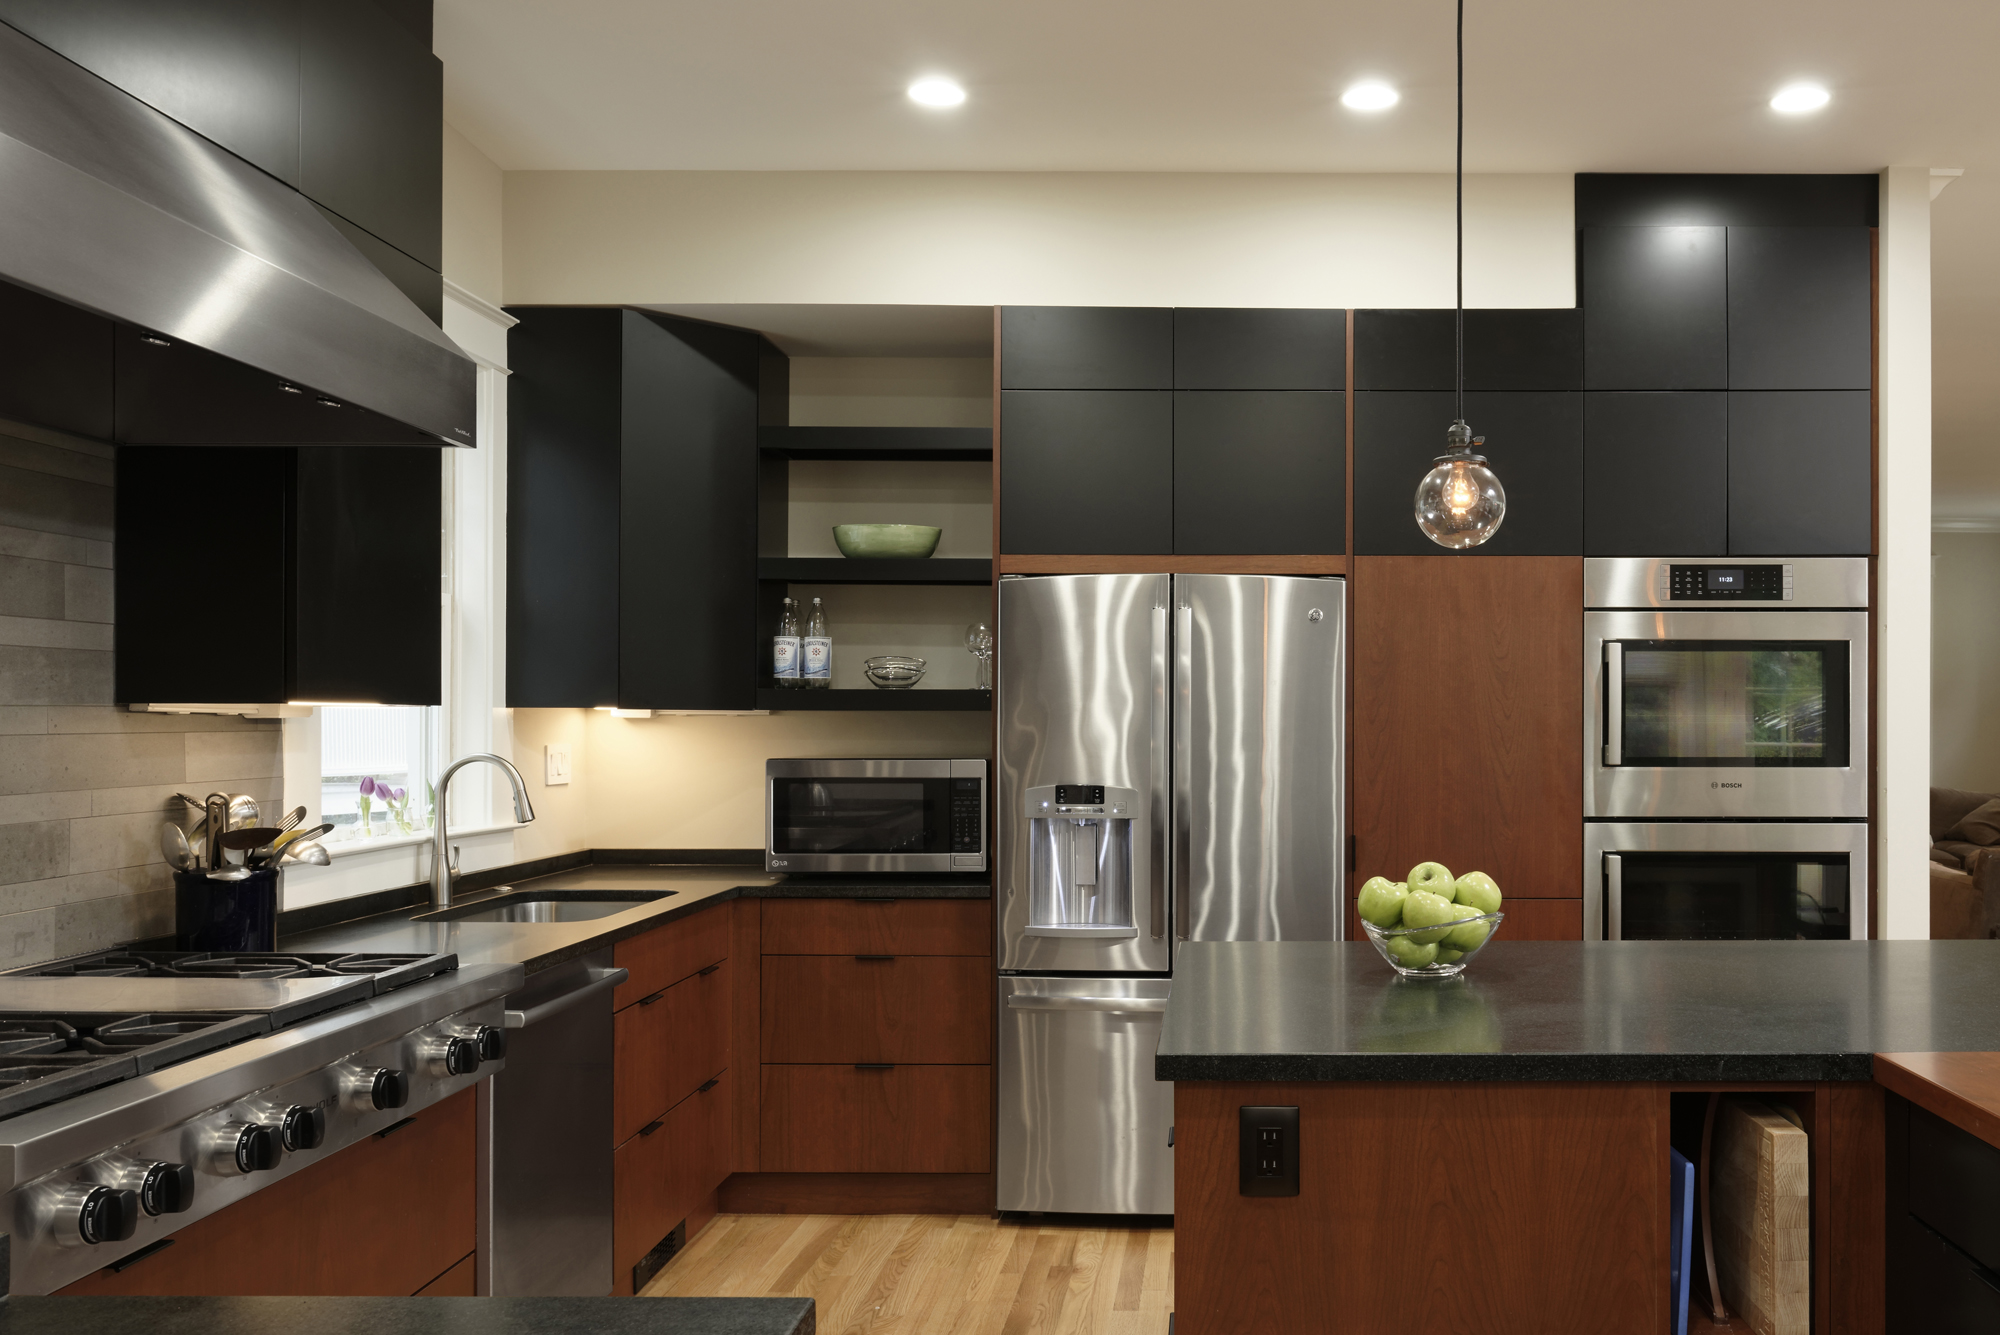 Kitchen Design Washington Dc Washington Dc Kitchen: kitchen design remodel dc